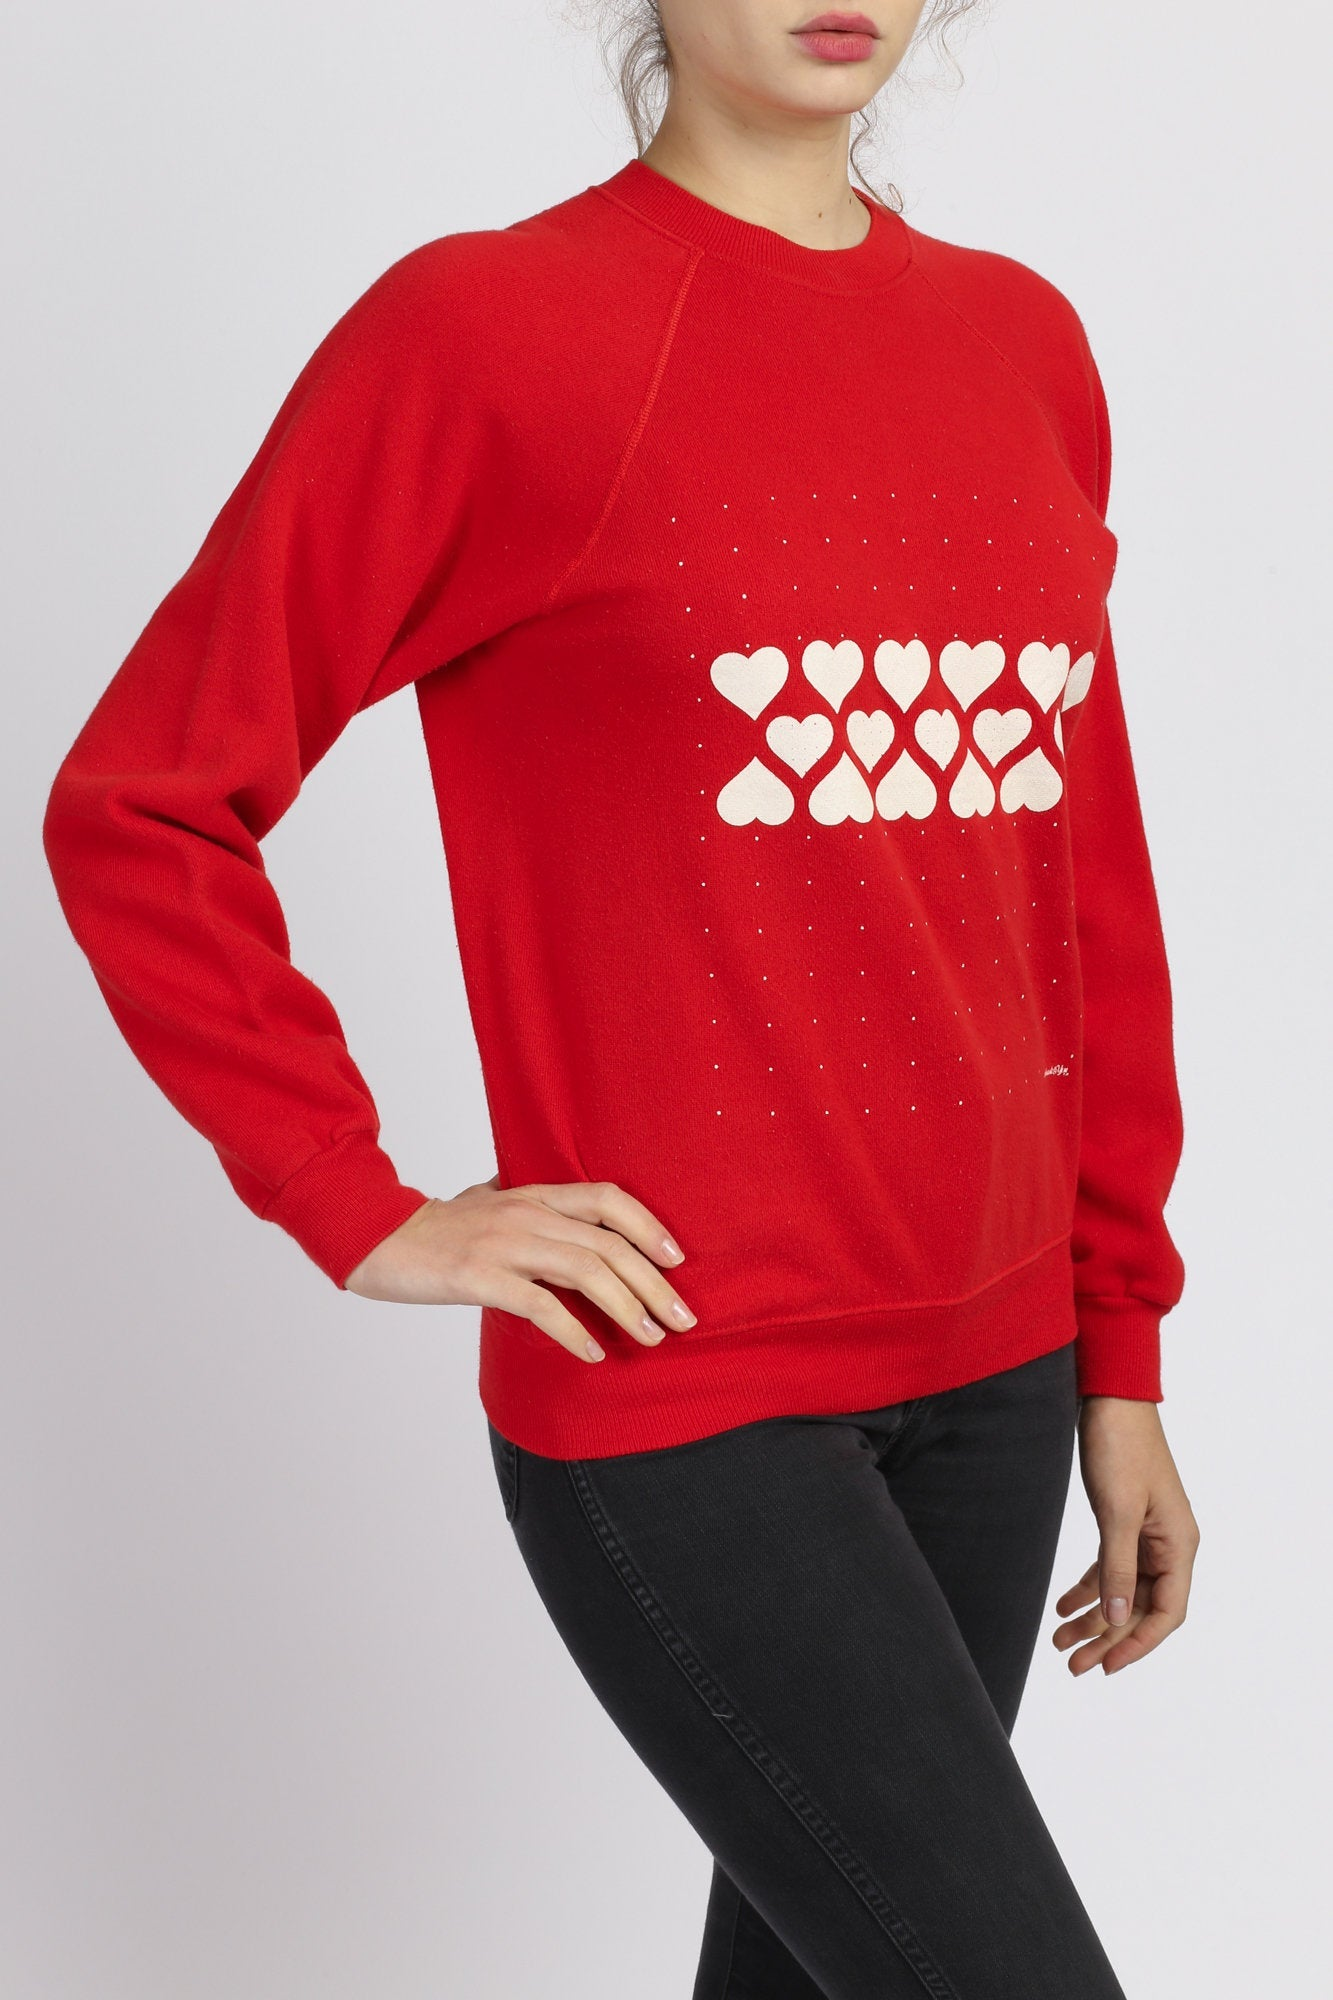 80s Heart Sweatshirt - Medium